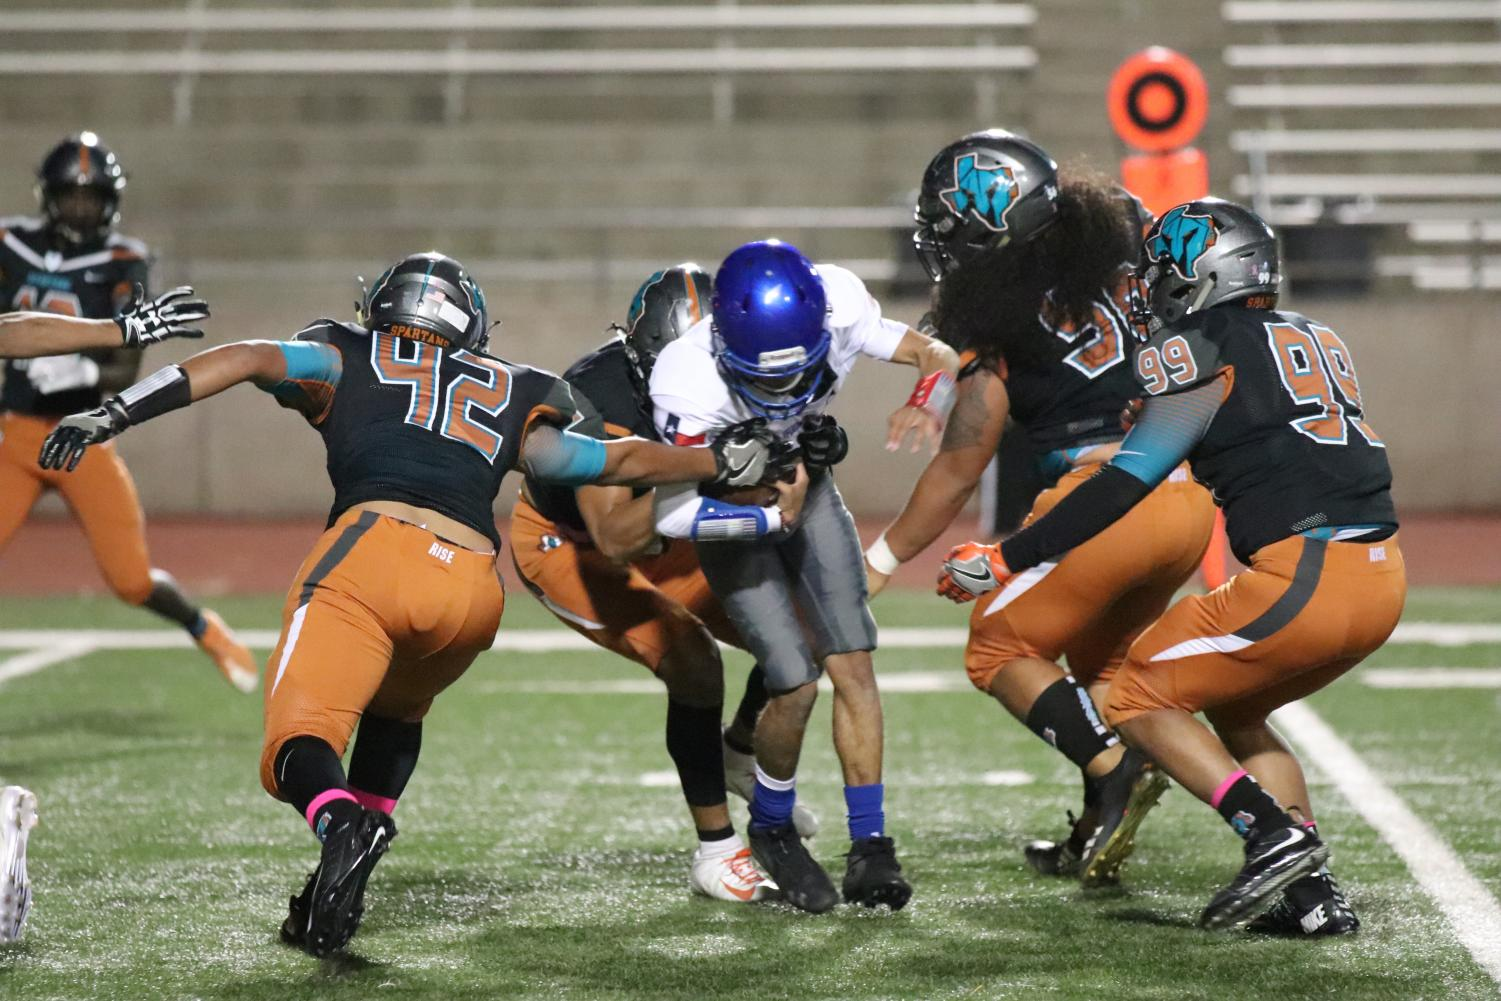 The Spartans defensive collect a sack Thursday night Oct. 25 at the SAC. Pebble Hills is now 2-1 in district.